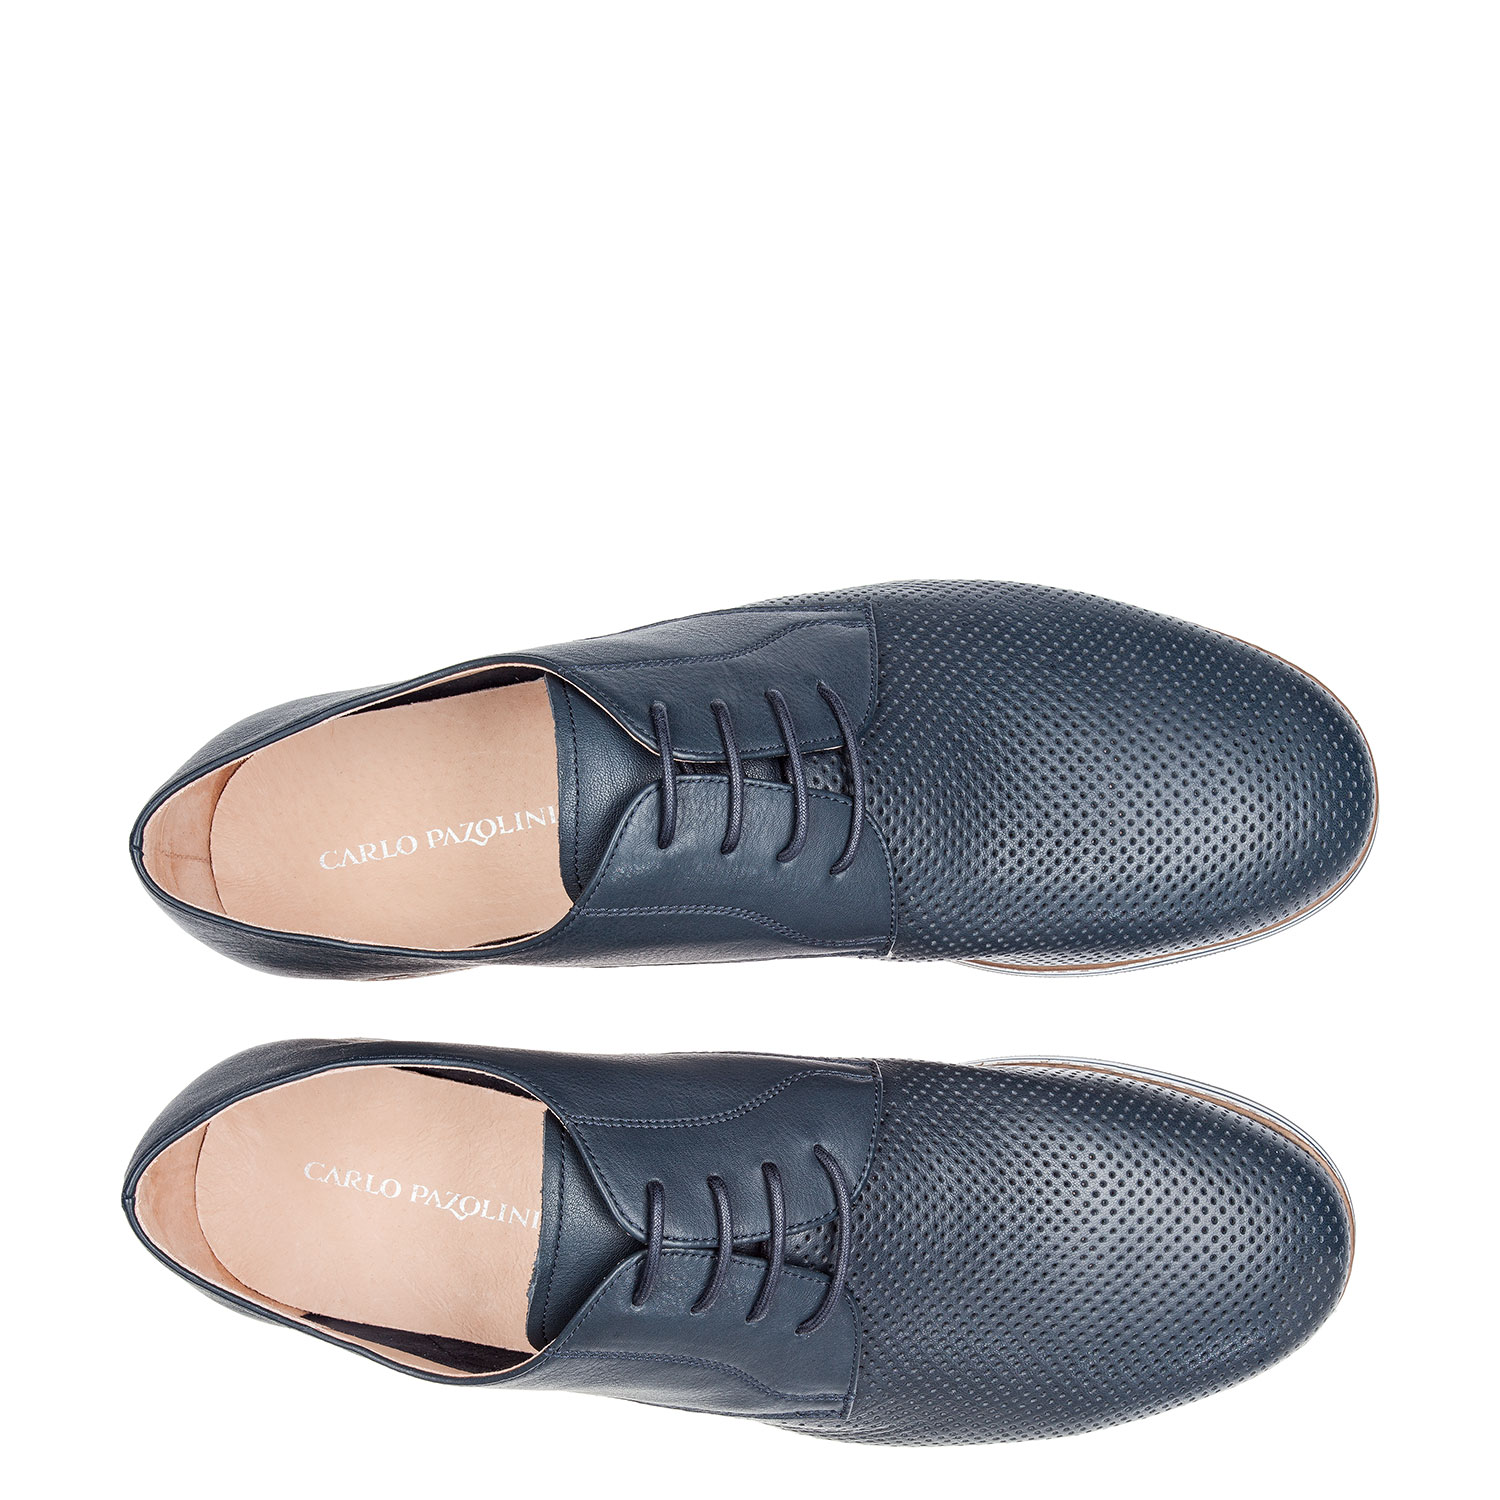 Men's shoes CARLO PAZOLINI HM-STU1-6H